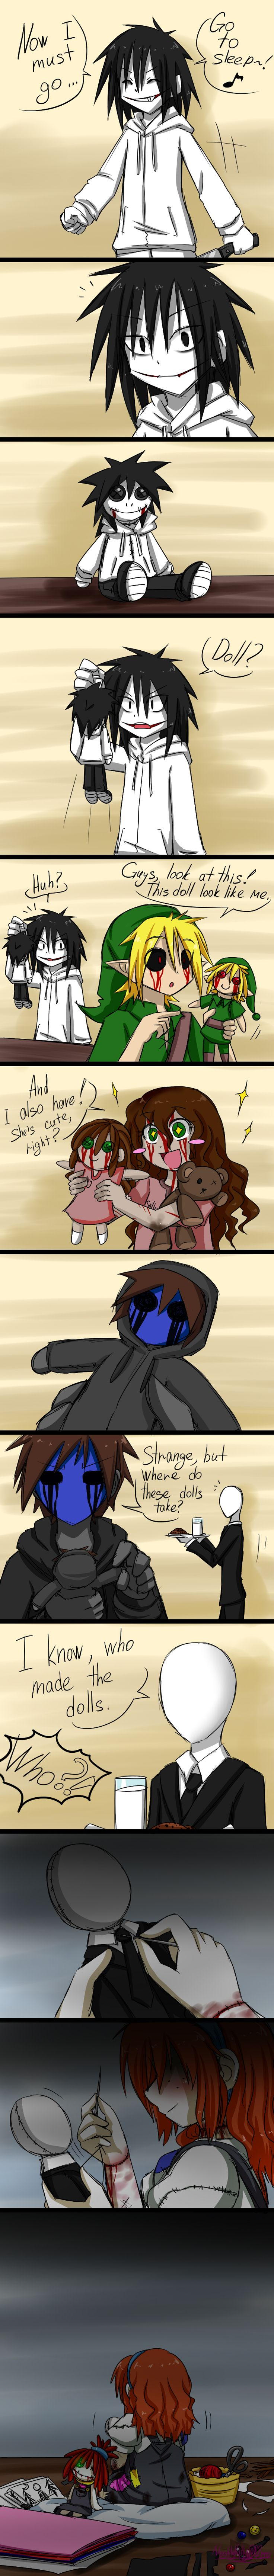 Jeff,Ben,sally,eyeless jack,and slenderman but who is the little girl making the little dolls?